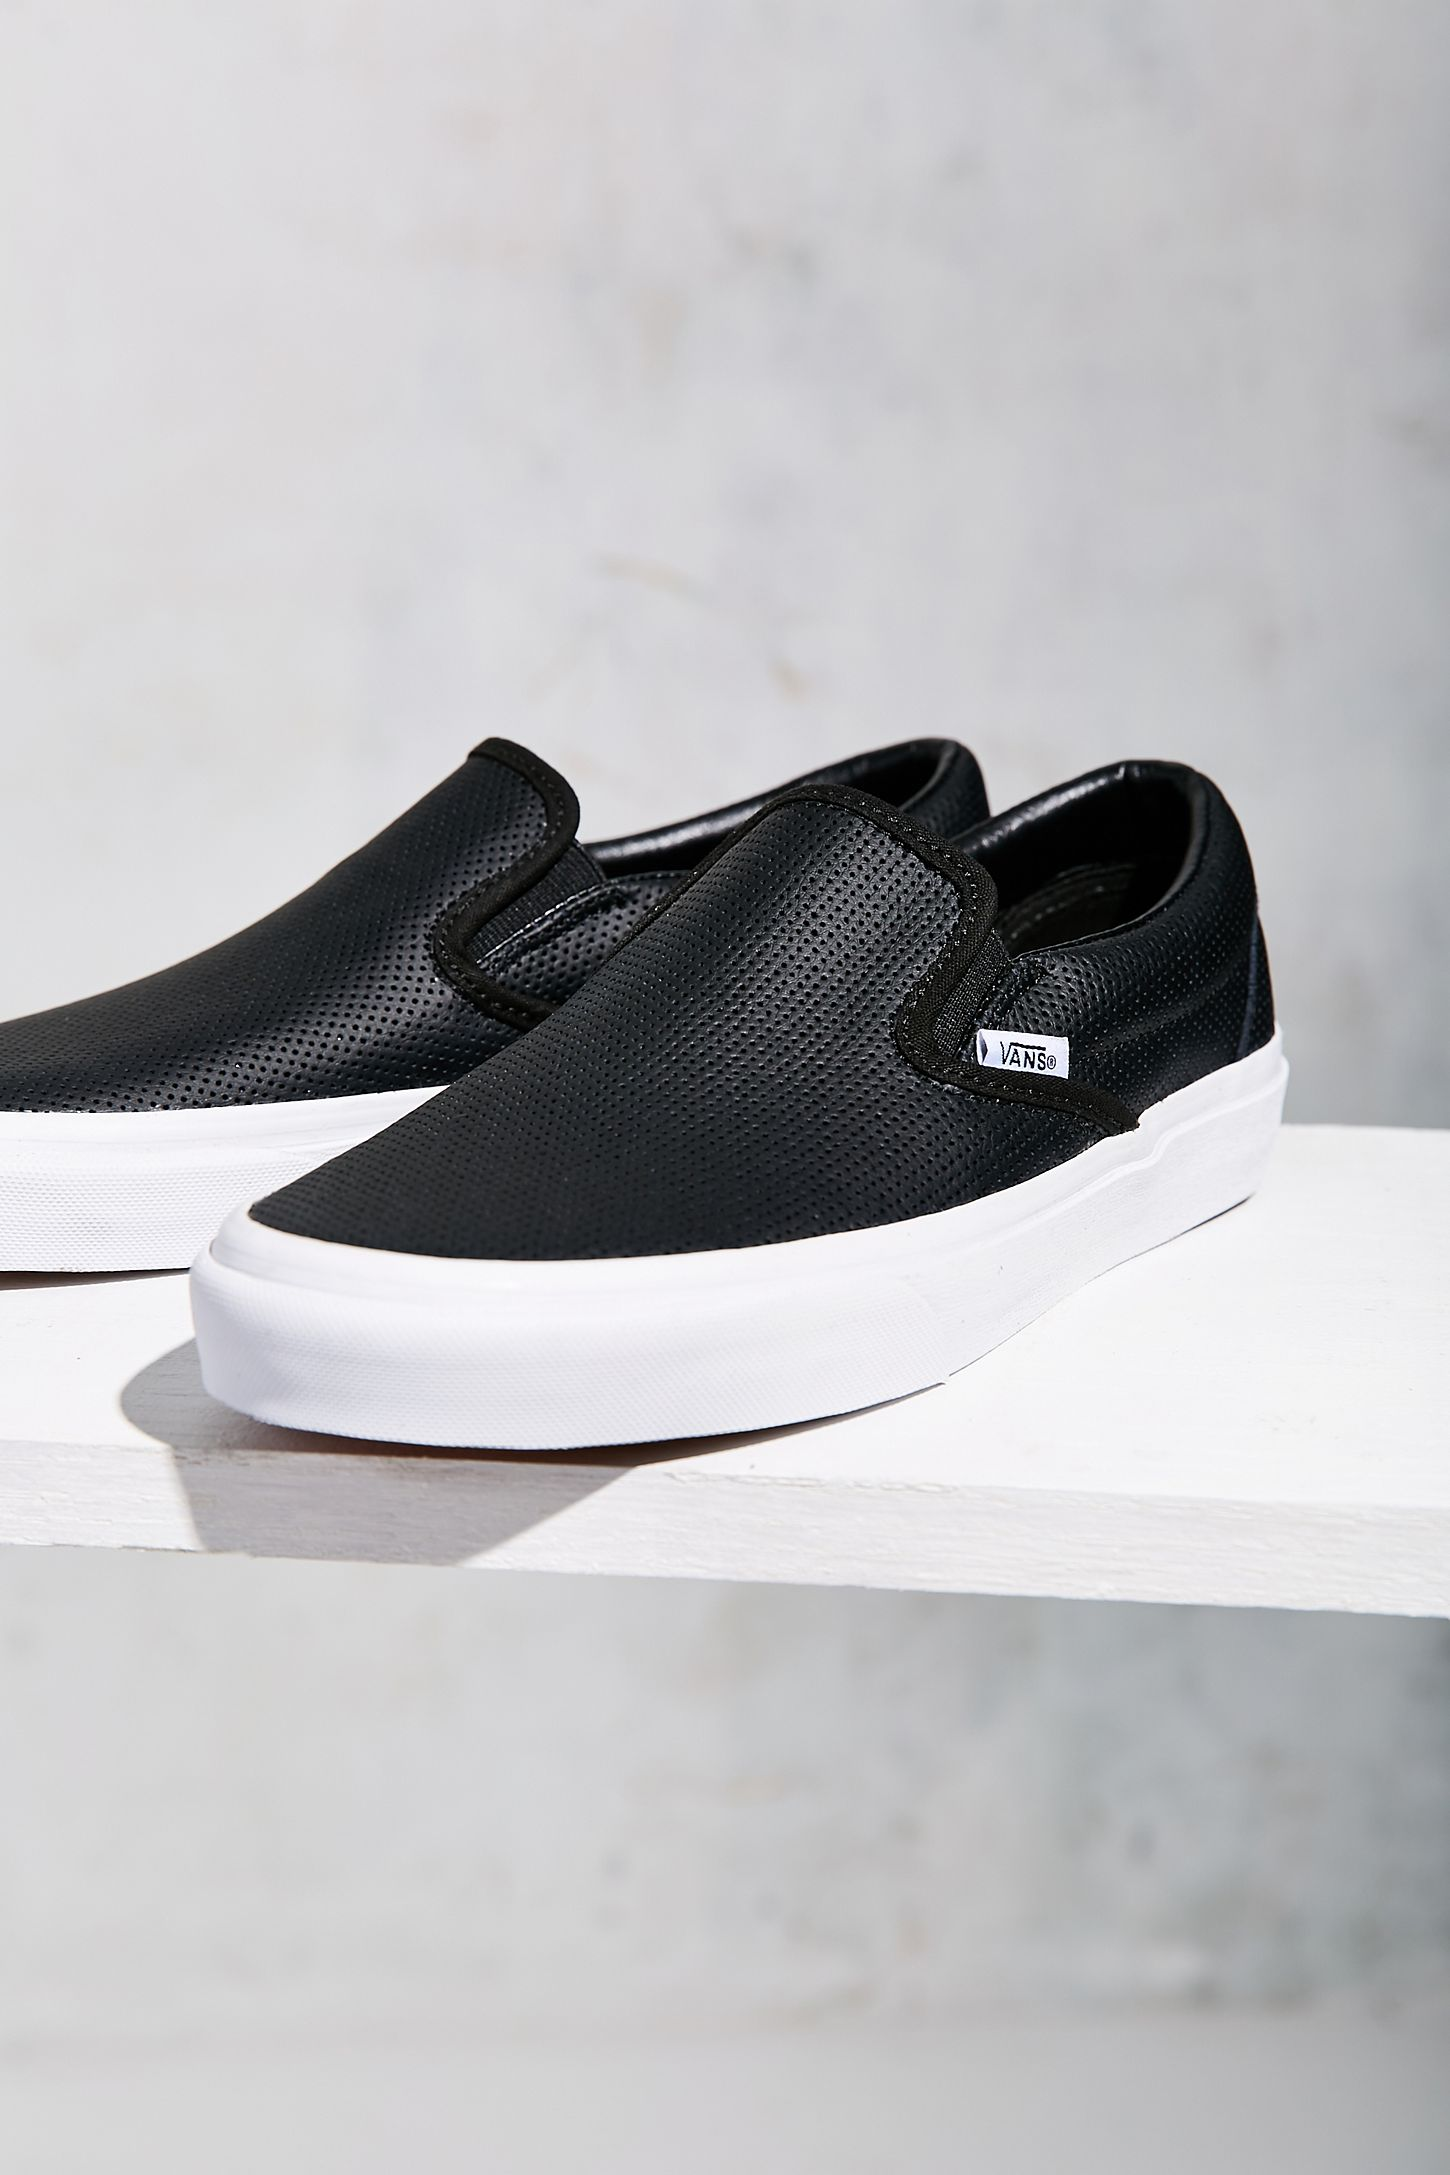 22bbcf5298 Vans Perforated Leather Slip-On Sneaker